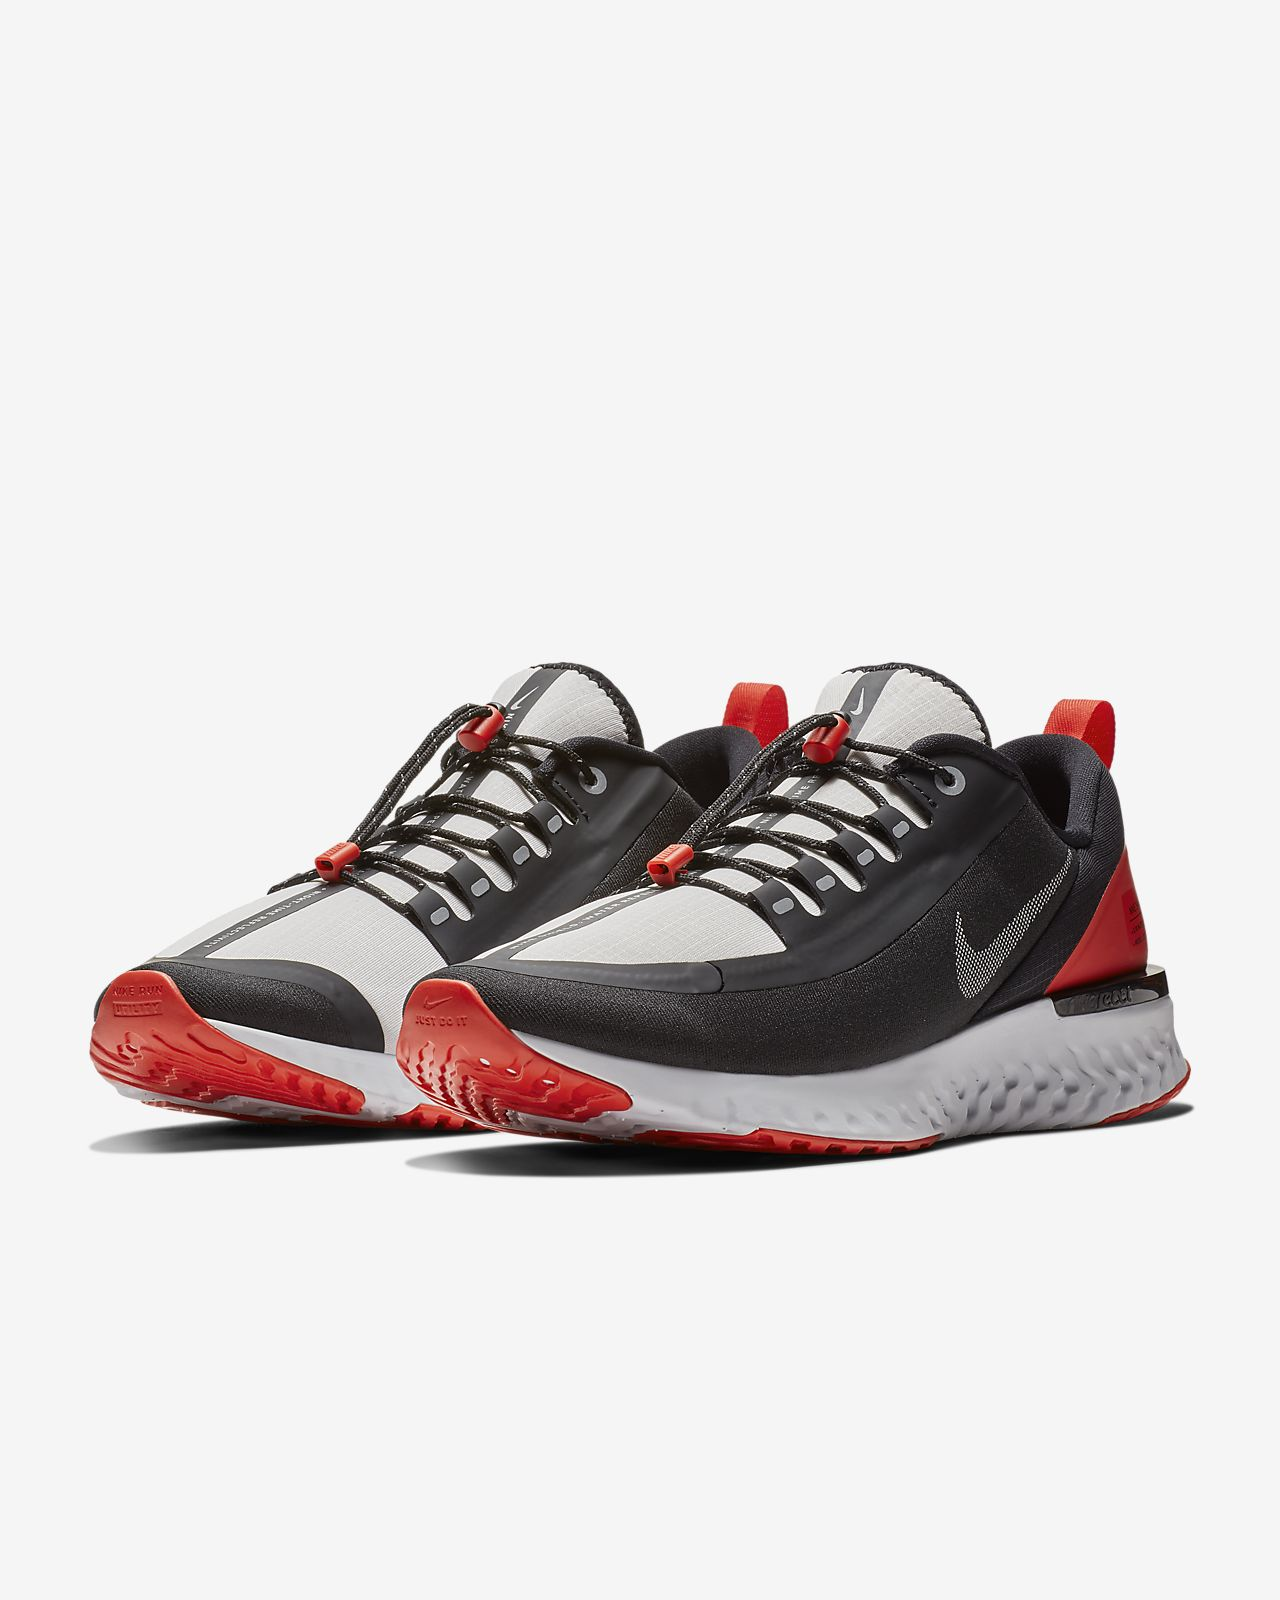 77bd683a142 ... Chaussure de running Nike Odyssey React Shield Water-Repellent pour  Homme